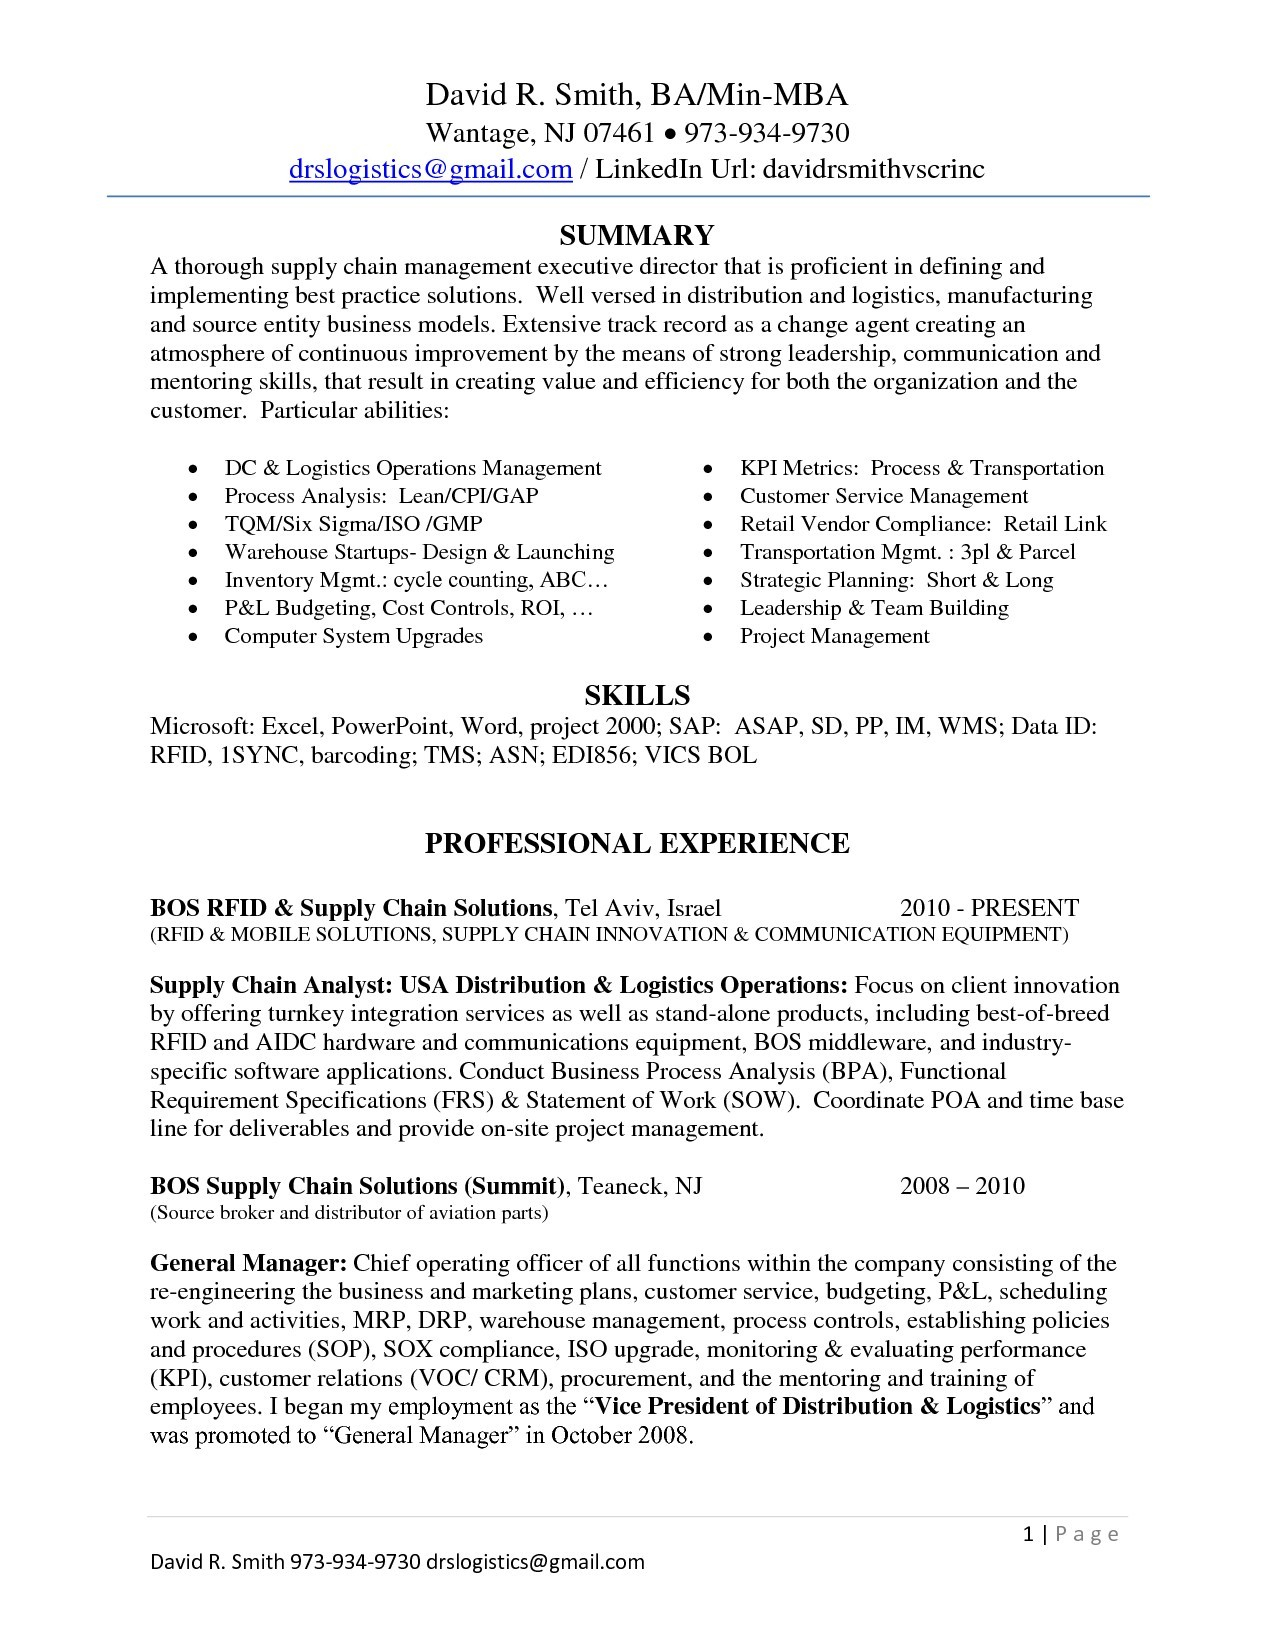 Supply Chain Resume Examples - 15 Supply Chain Resume Examples